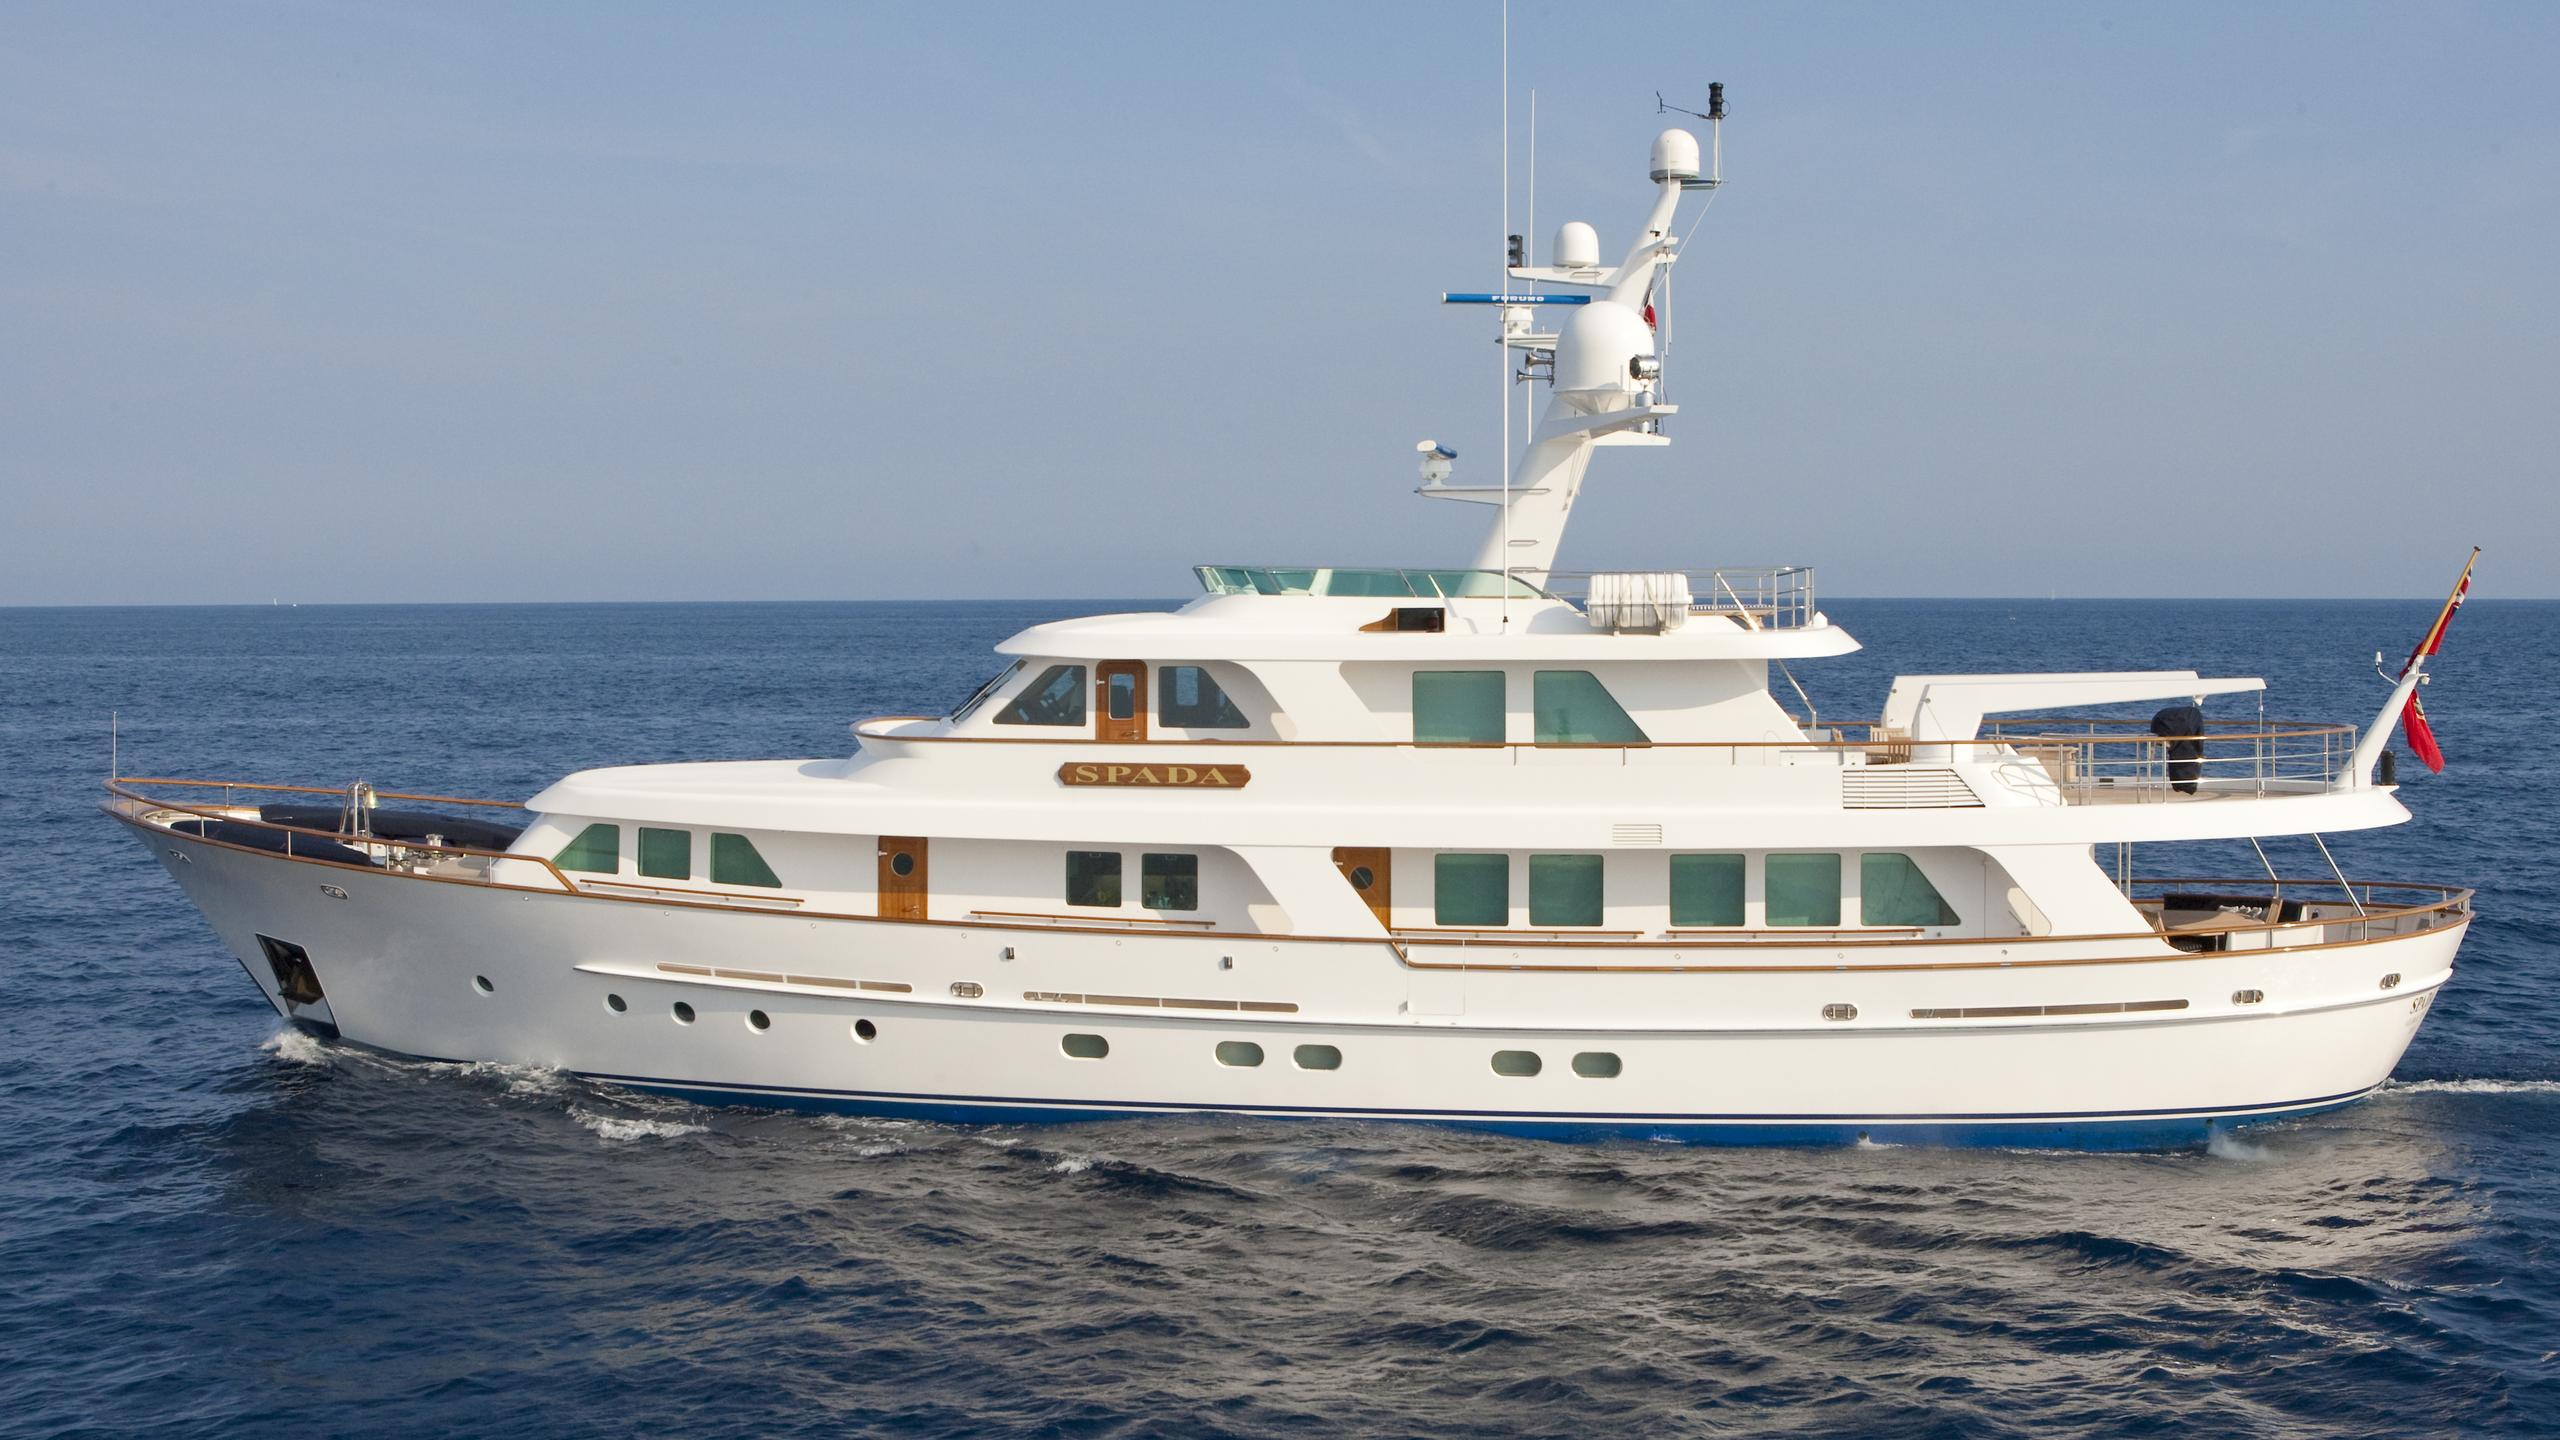 spada-yacht-for-sale-profile